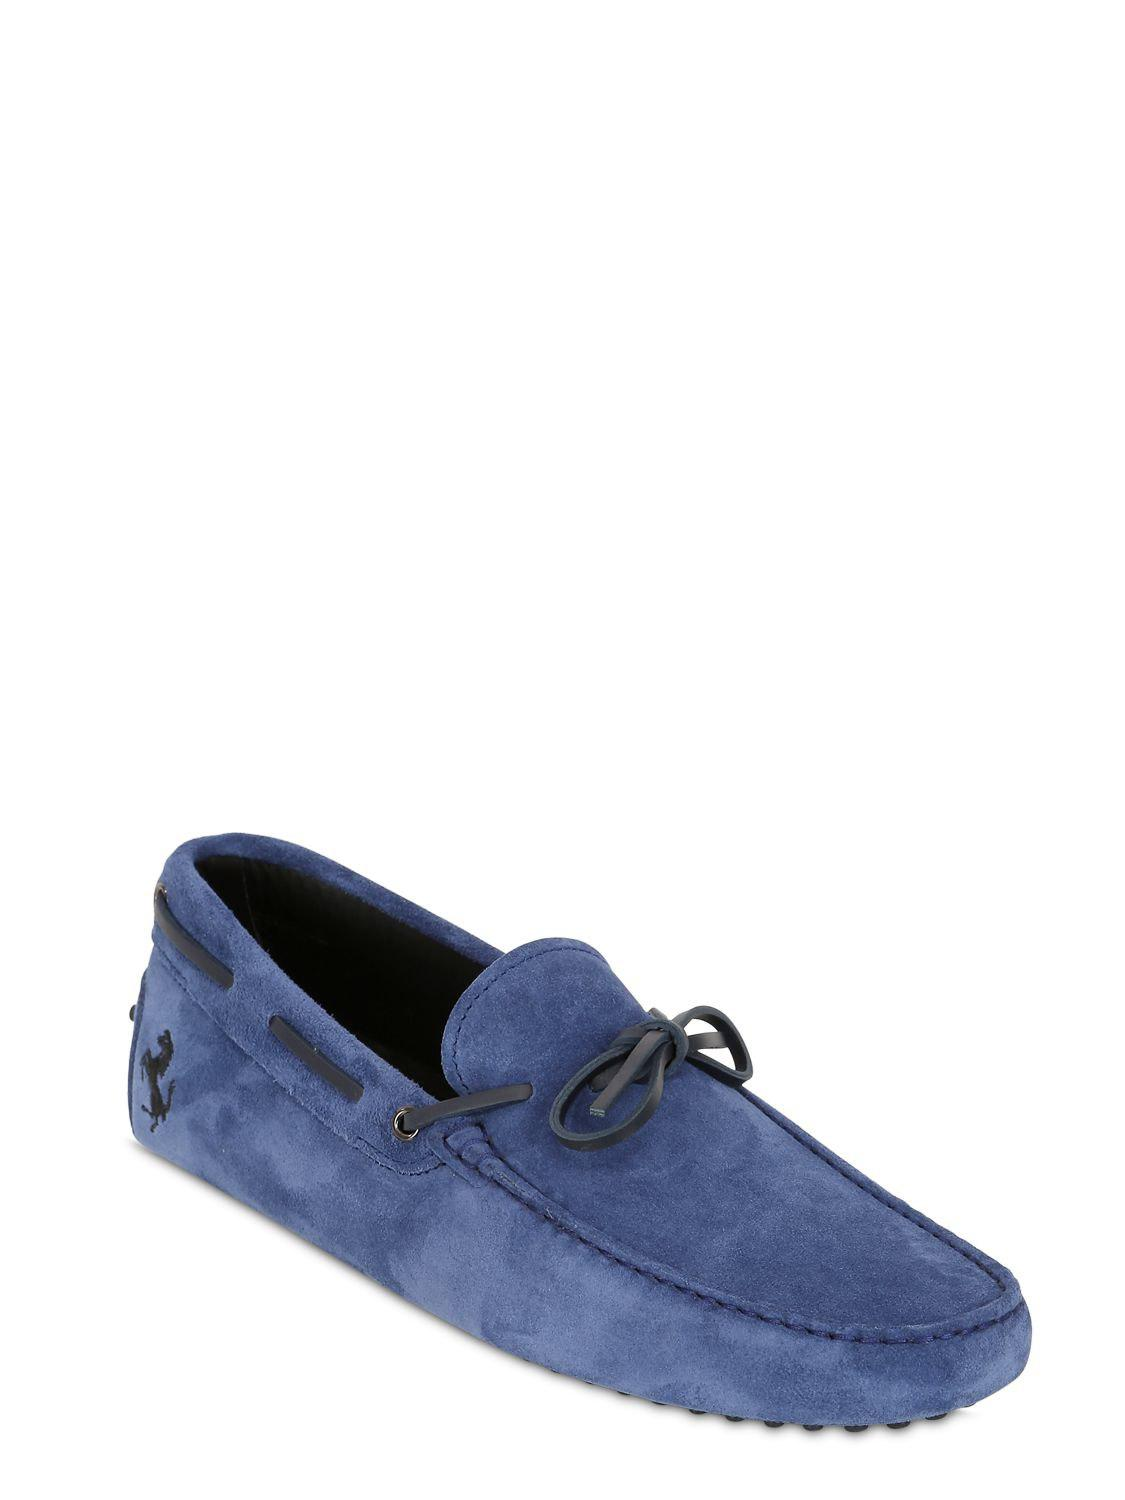 a08cd3c4792 Lyst - Tod s Gommino 122 Tie Suede Driving Shoes in Blue for Men